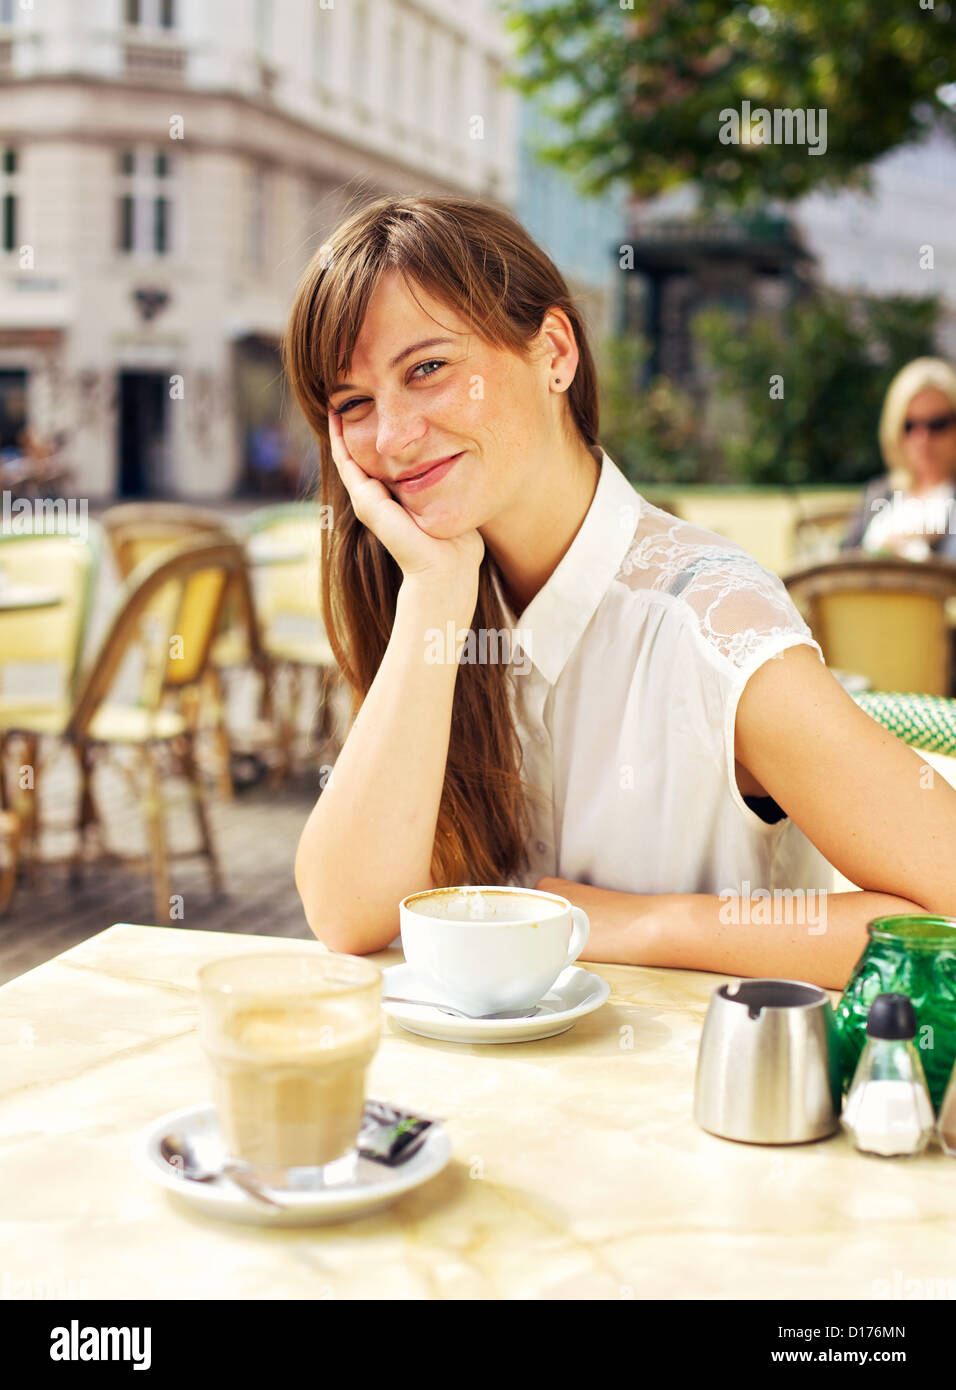 Beautiful relaxed woman smiling and enjoying the open air restaurant in the city - Stock Image